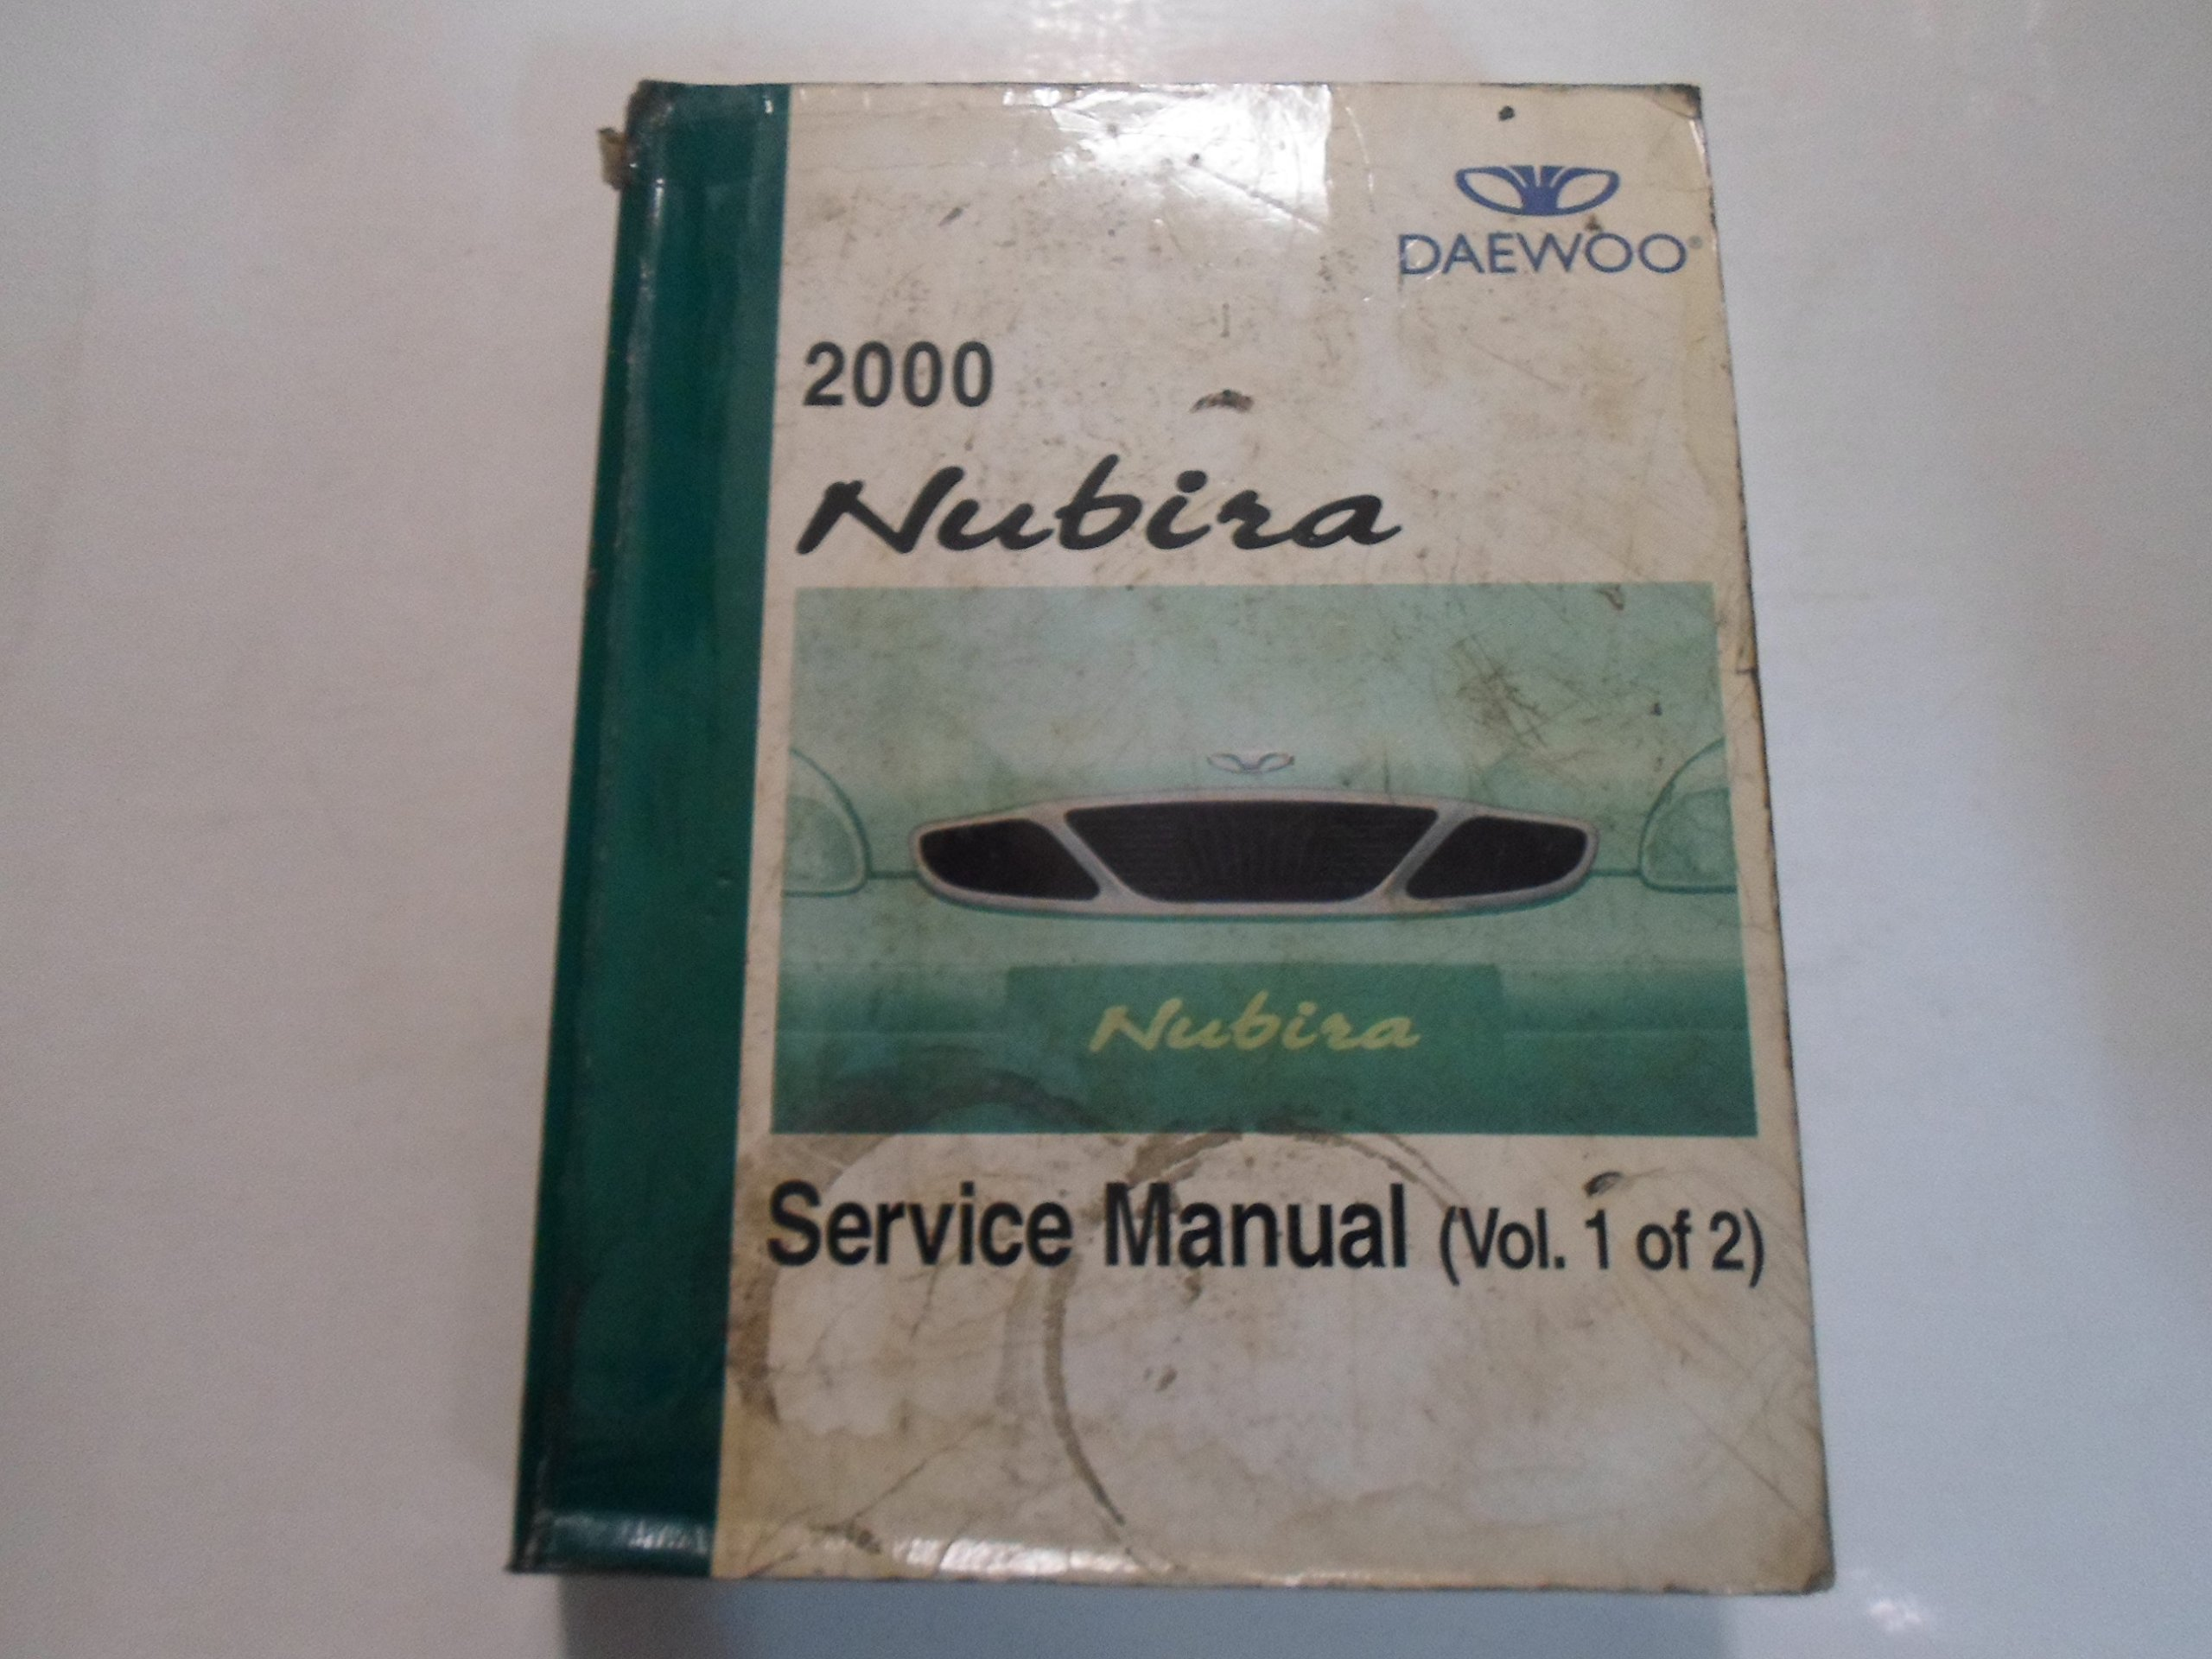 2000 DAEWOO Nubira Service Repair Shop Manual Volume 1 of 2 WATER DAMAGED:  DAEWOO: Amazon.com: Books